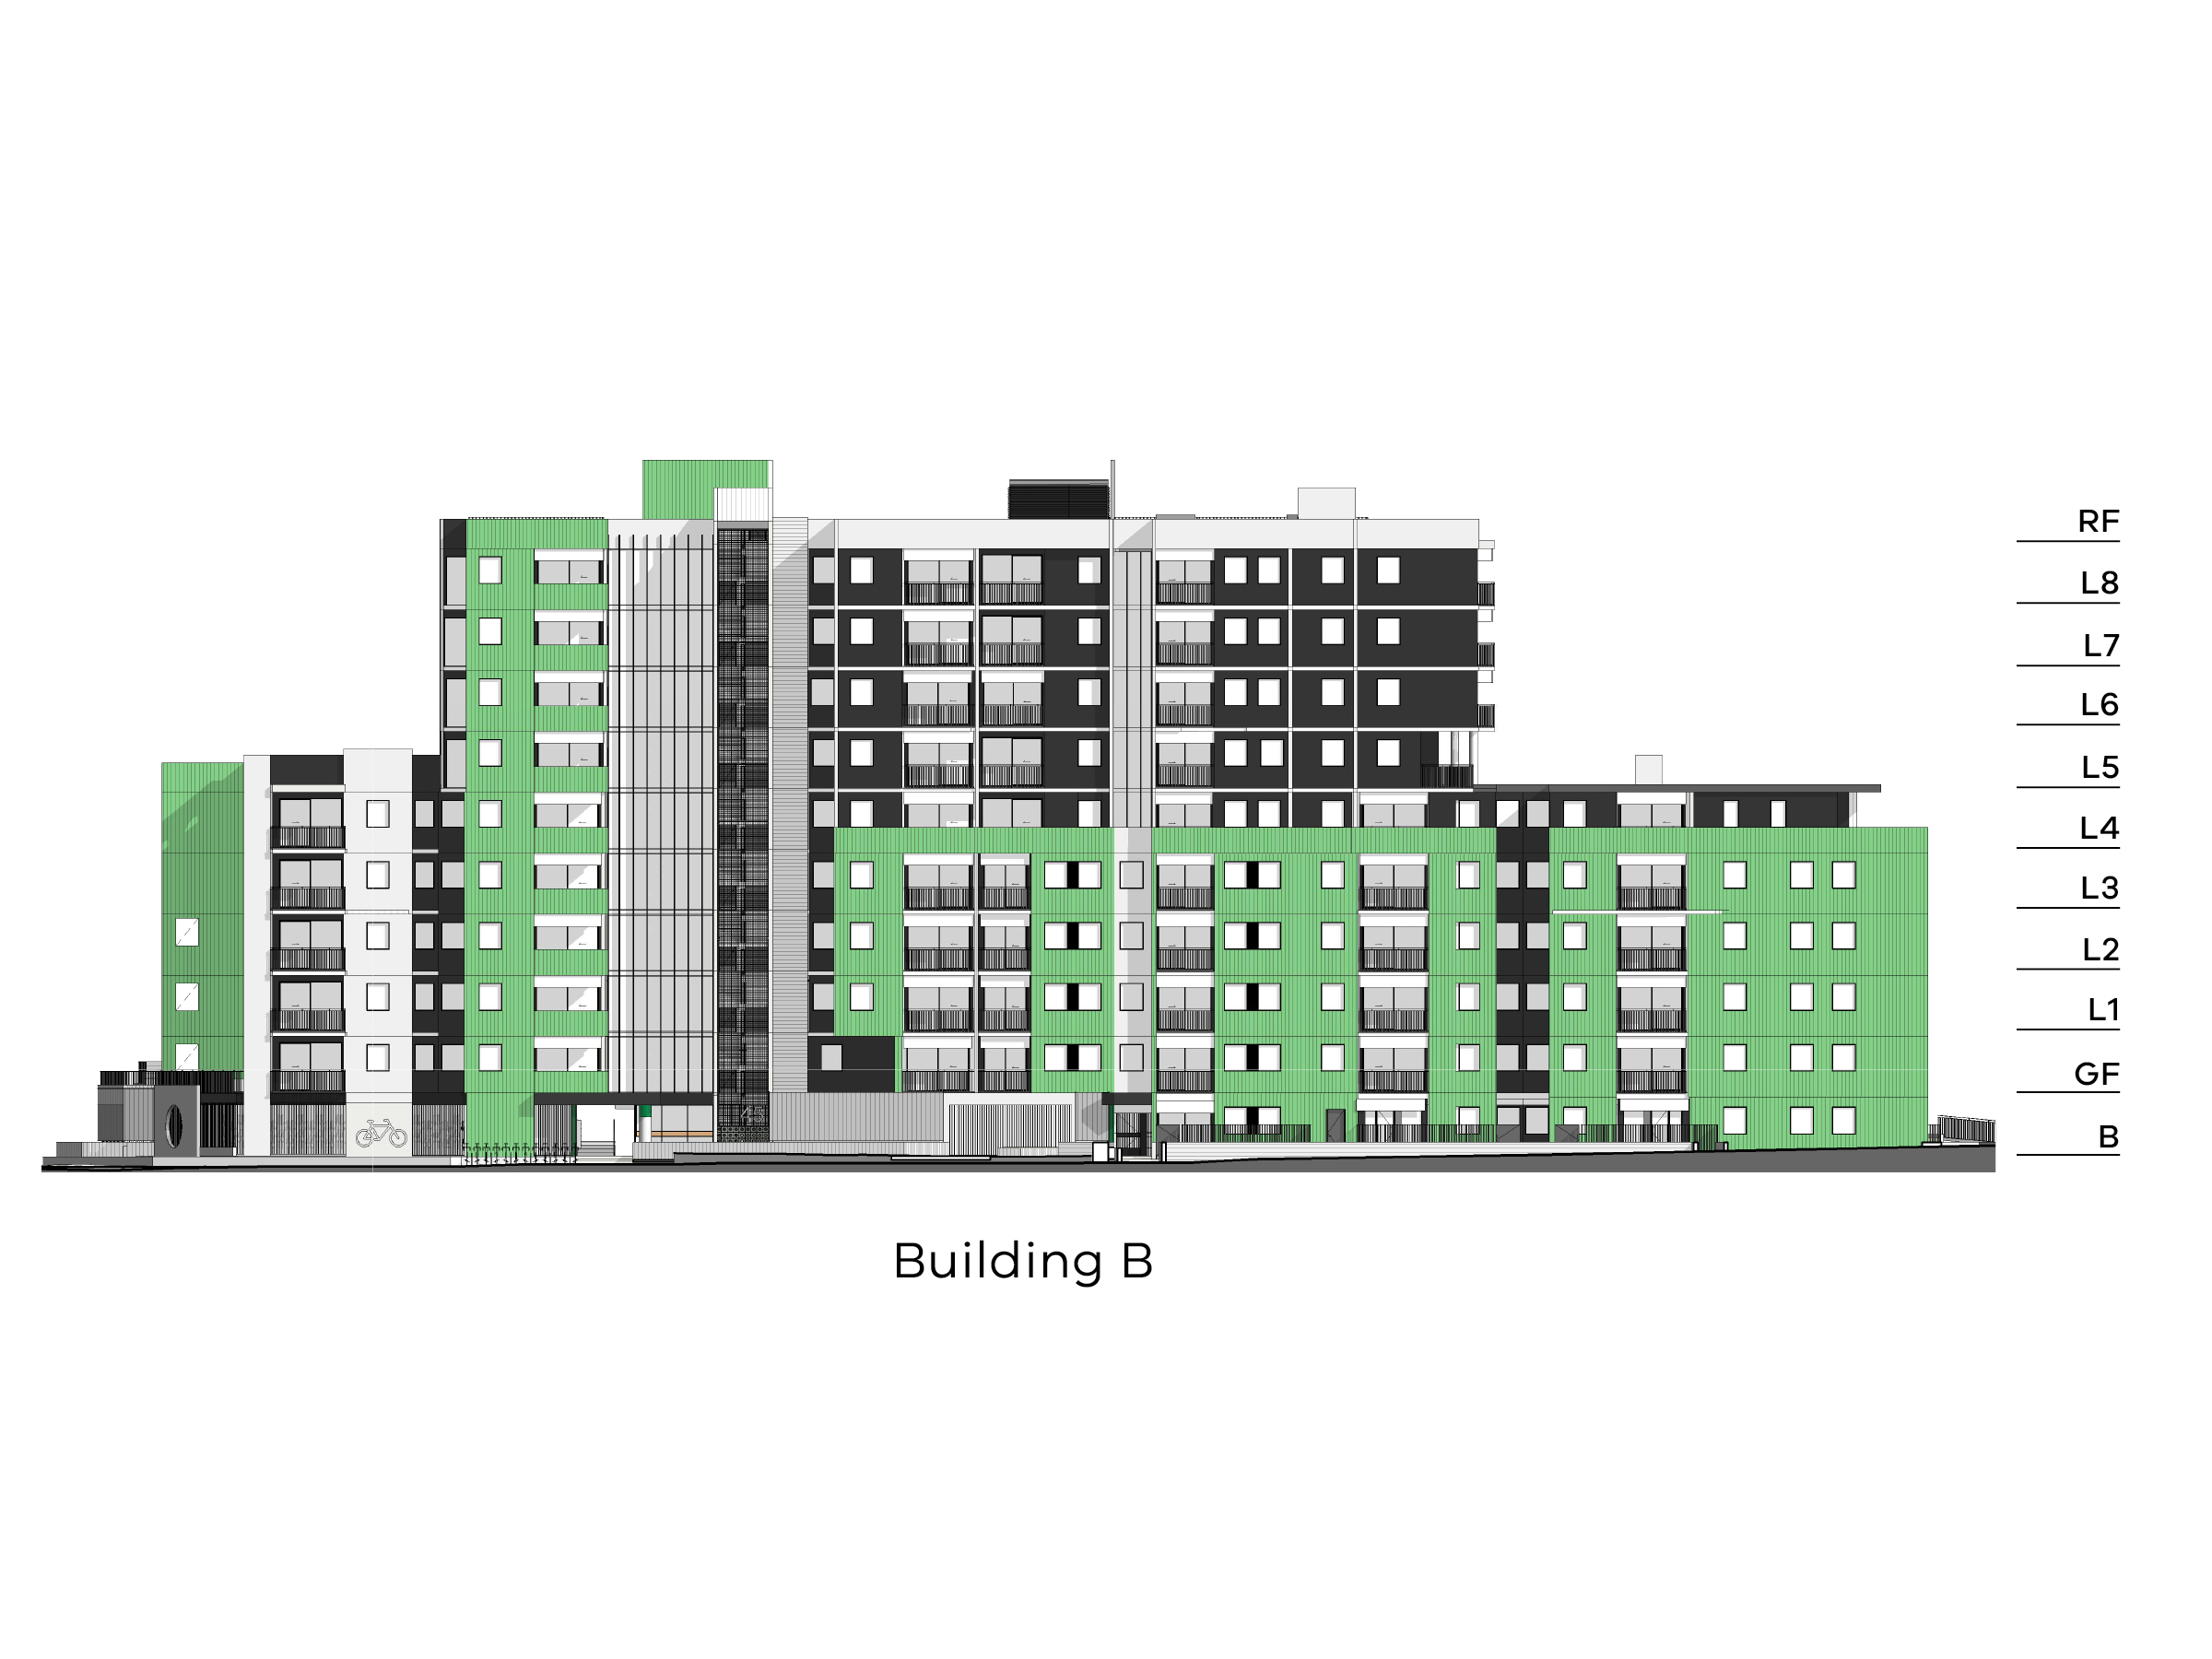 Diagram showing the heights of building B as seen from New Holland Crescent. Building B has different heights. The side closest to Hill Street has a basement, a ground floor level with bike storage, level 1-4 and a flat roof. The middle part has a basement level, a ground floor, level 1-8 and a flat roof. The side closest to Debneys Park has a basement level, ground floor, level 1-4 and a flat roof.